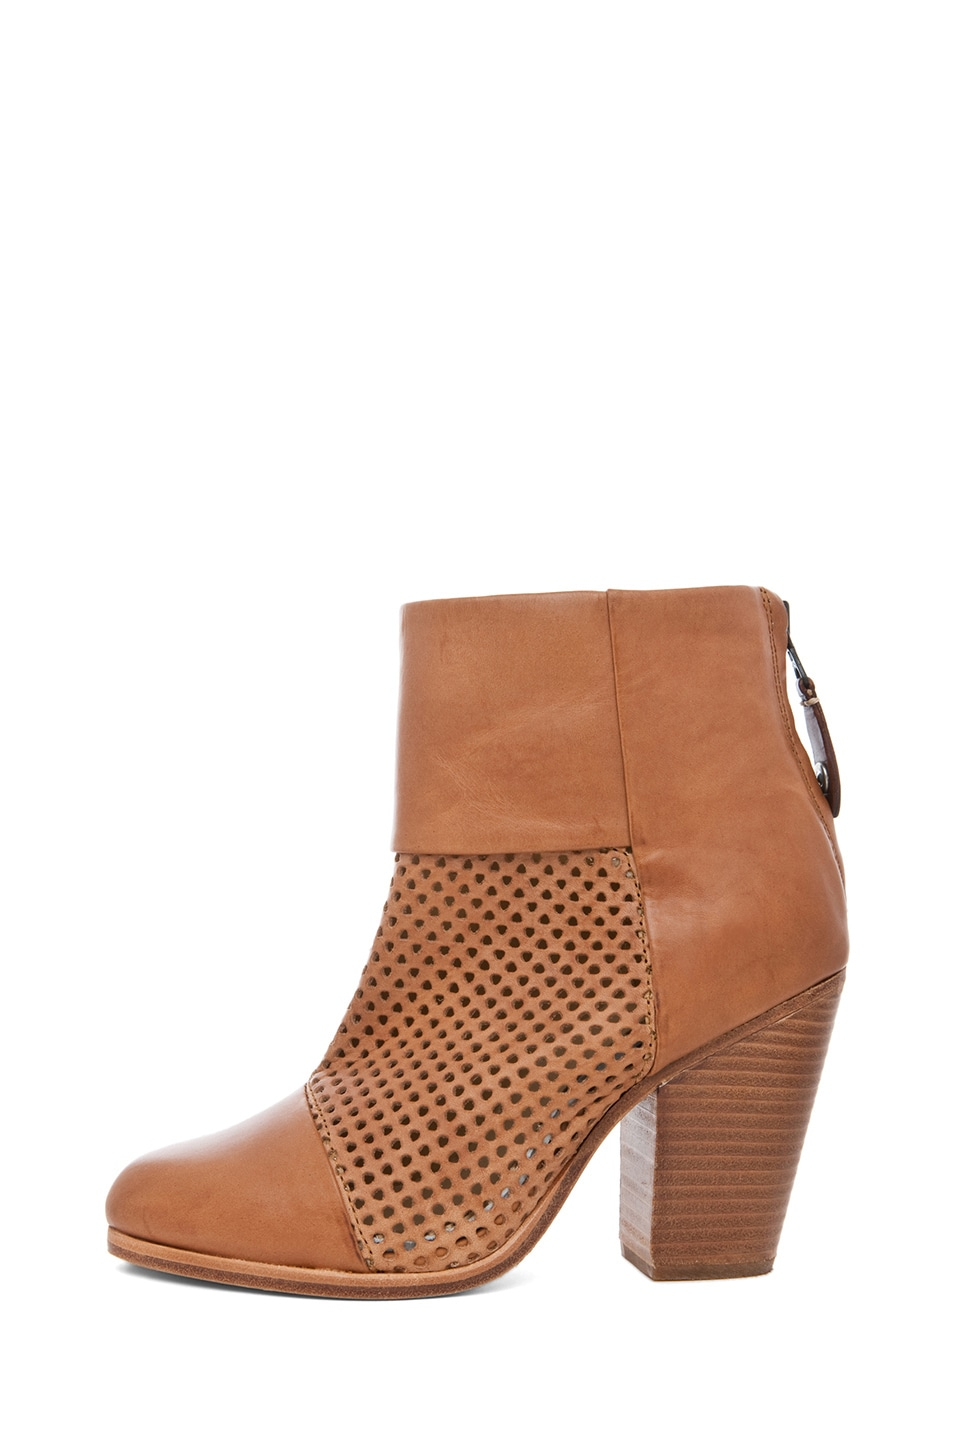 Image 1 of Rag & Bone Classic Perforated Newbury in Tan